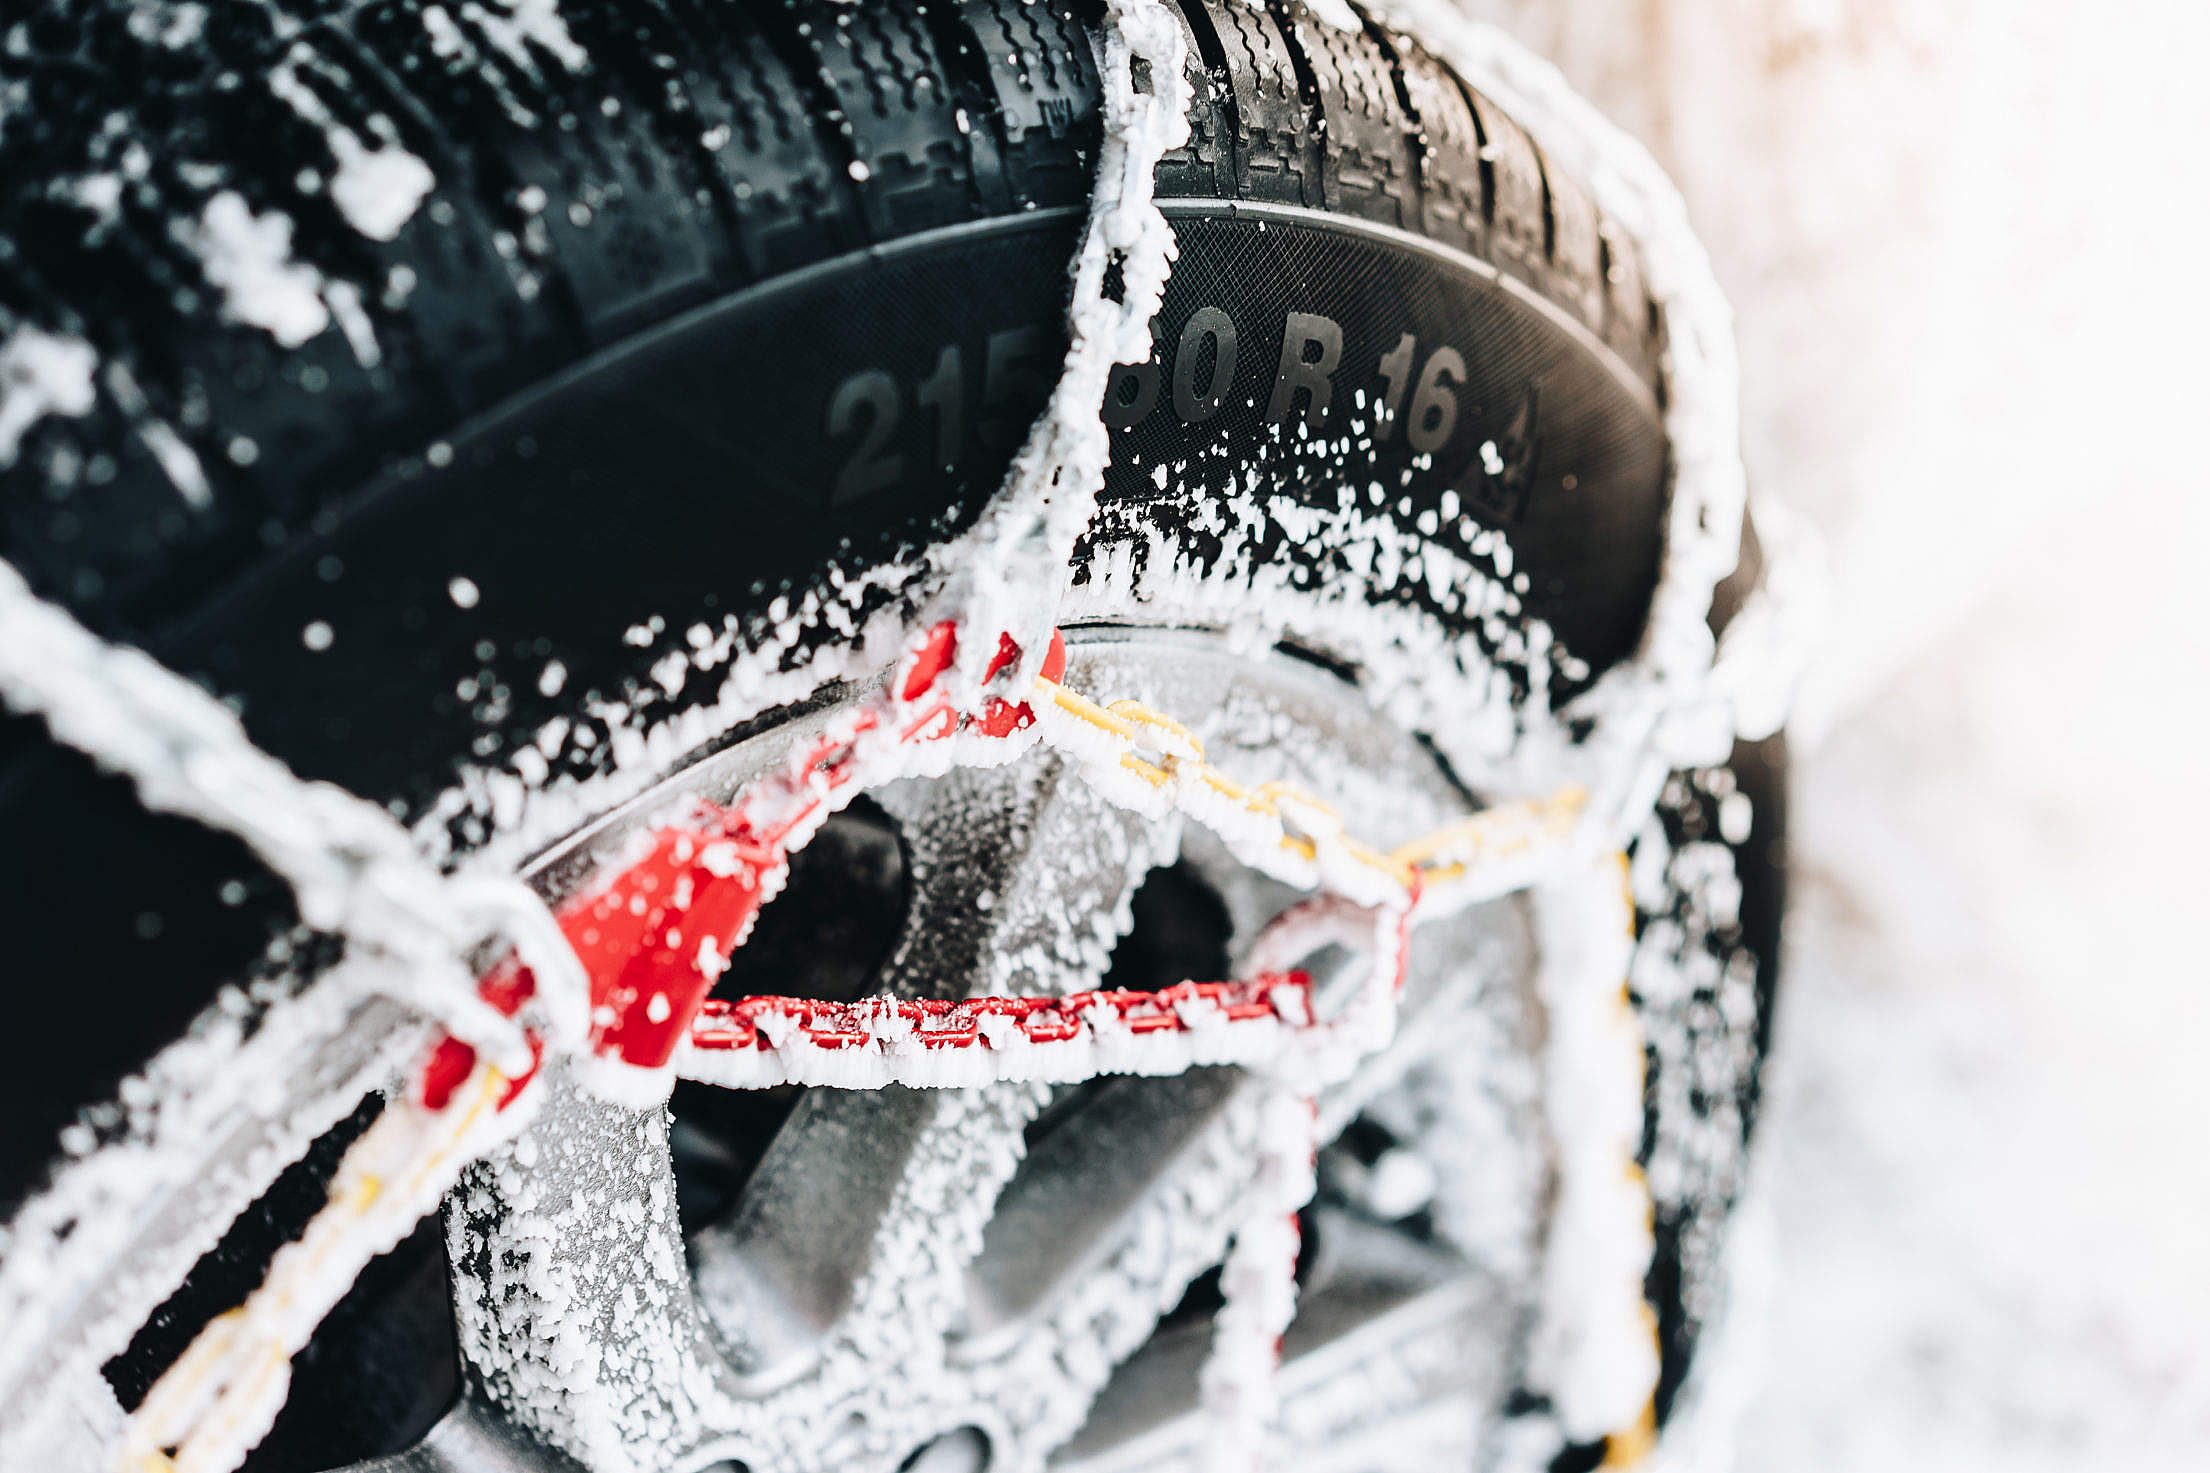 Snow Chains for Car Free Stock Photo